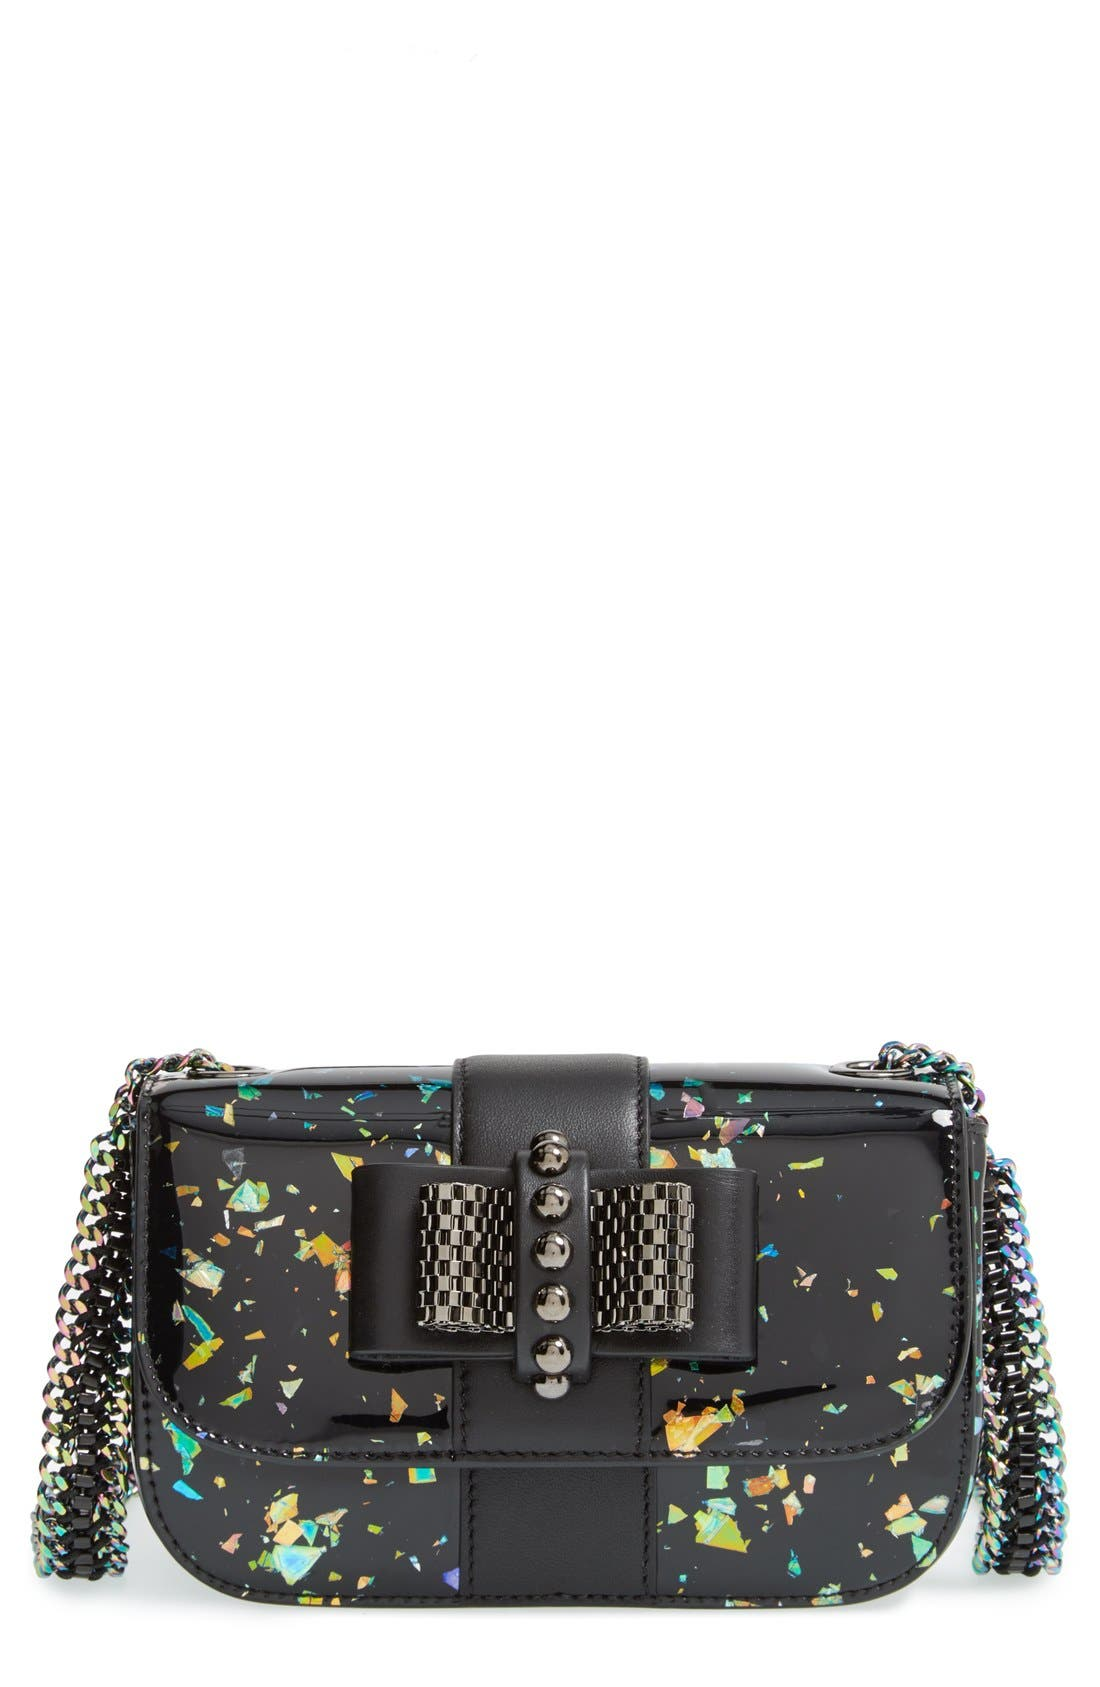 Main Image - Christian Louboutin 'Sweety Charity' Patent Leather Shoulder Bag